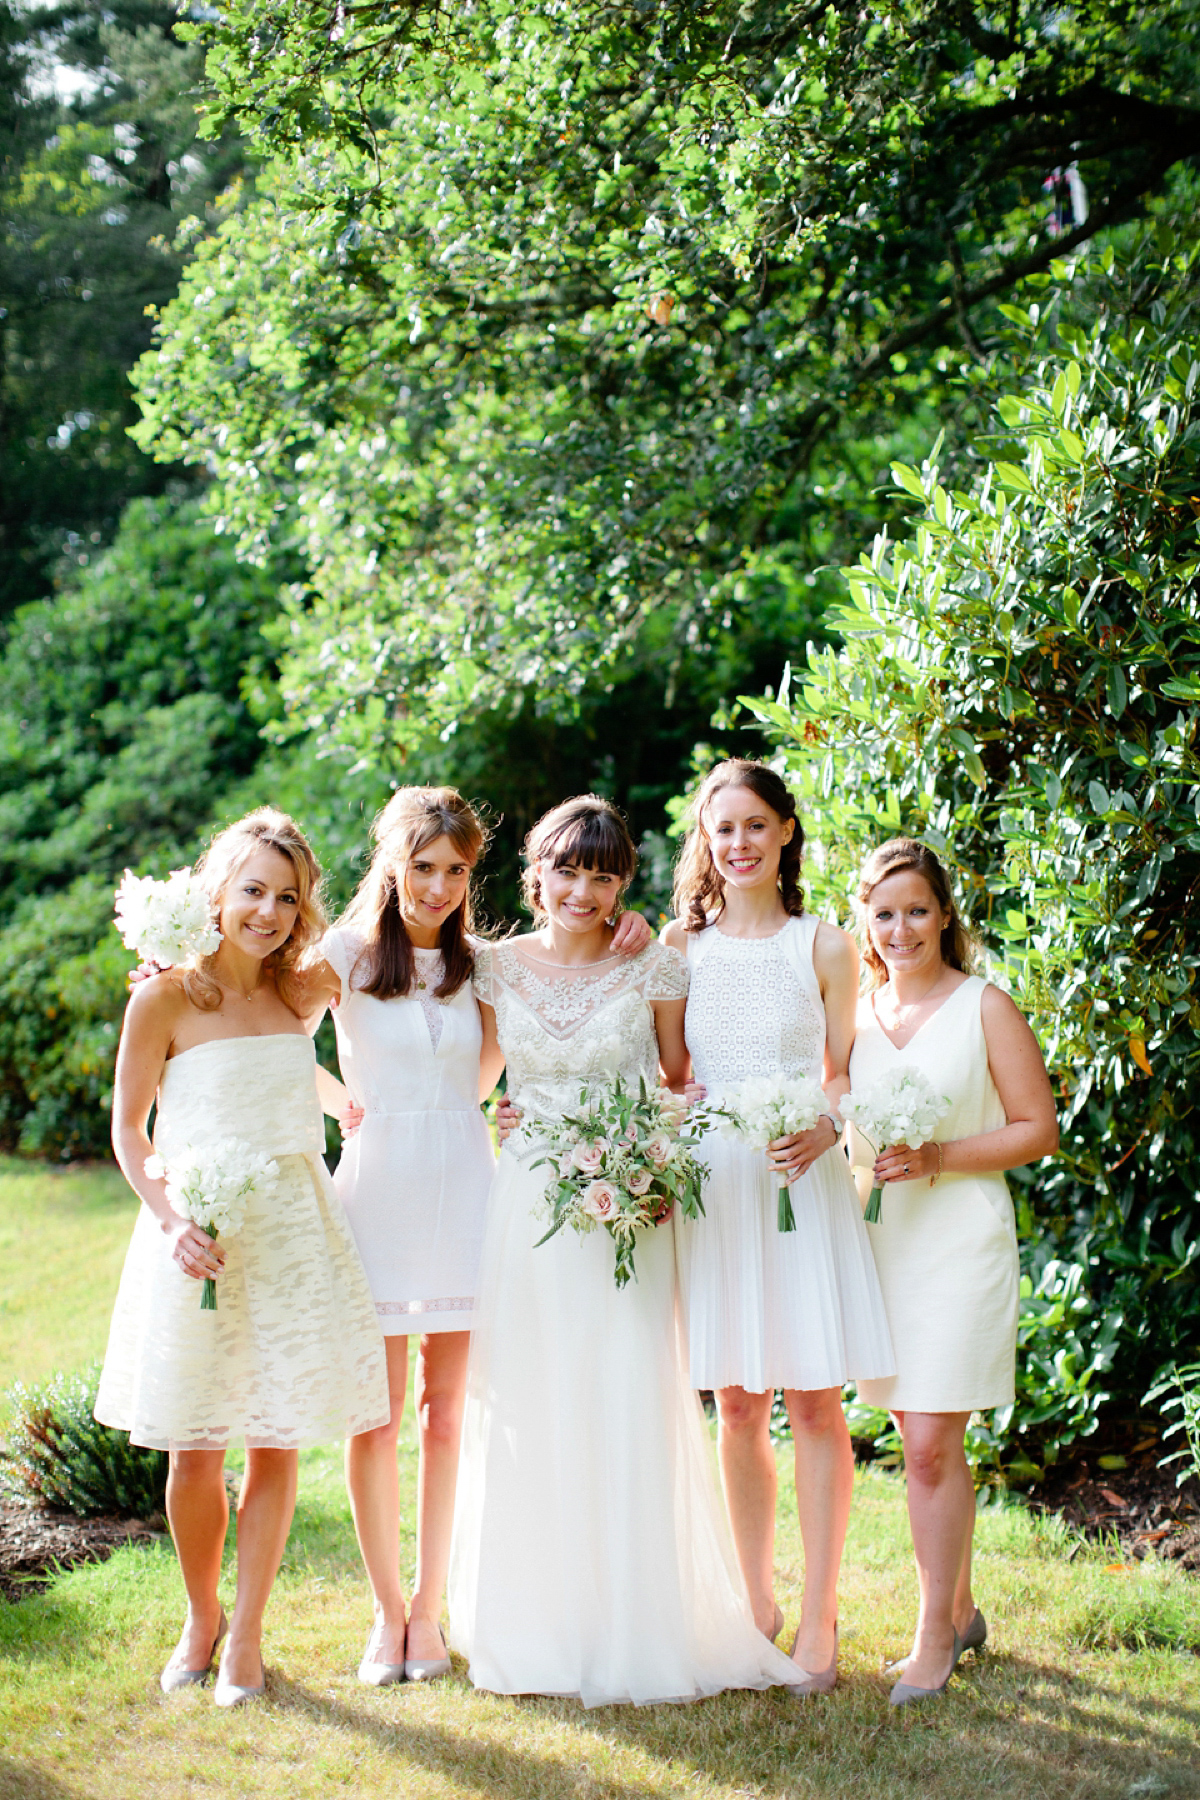 Halfpenny London Elegance for an English Country Garden Wedding at Home